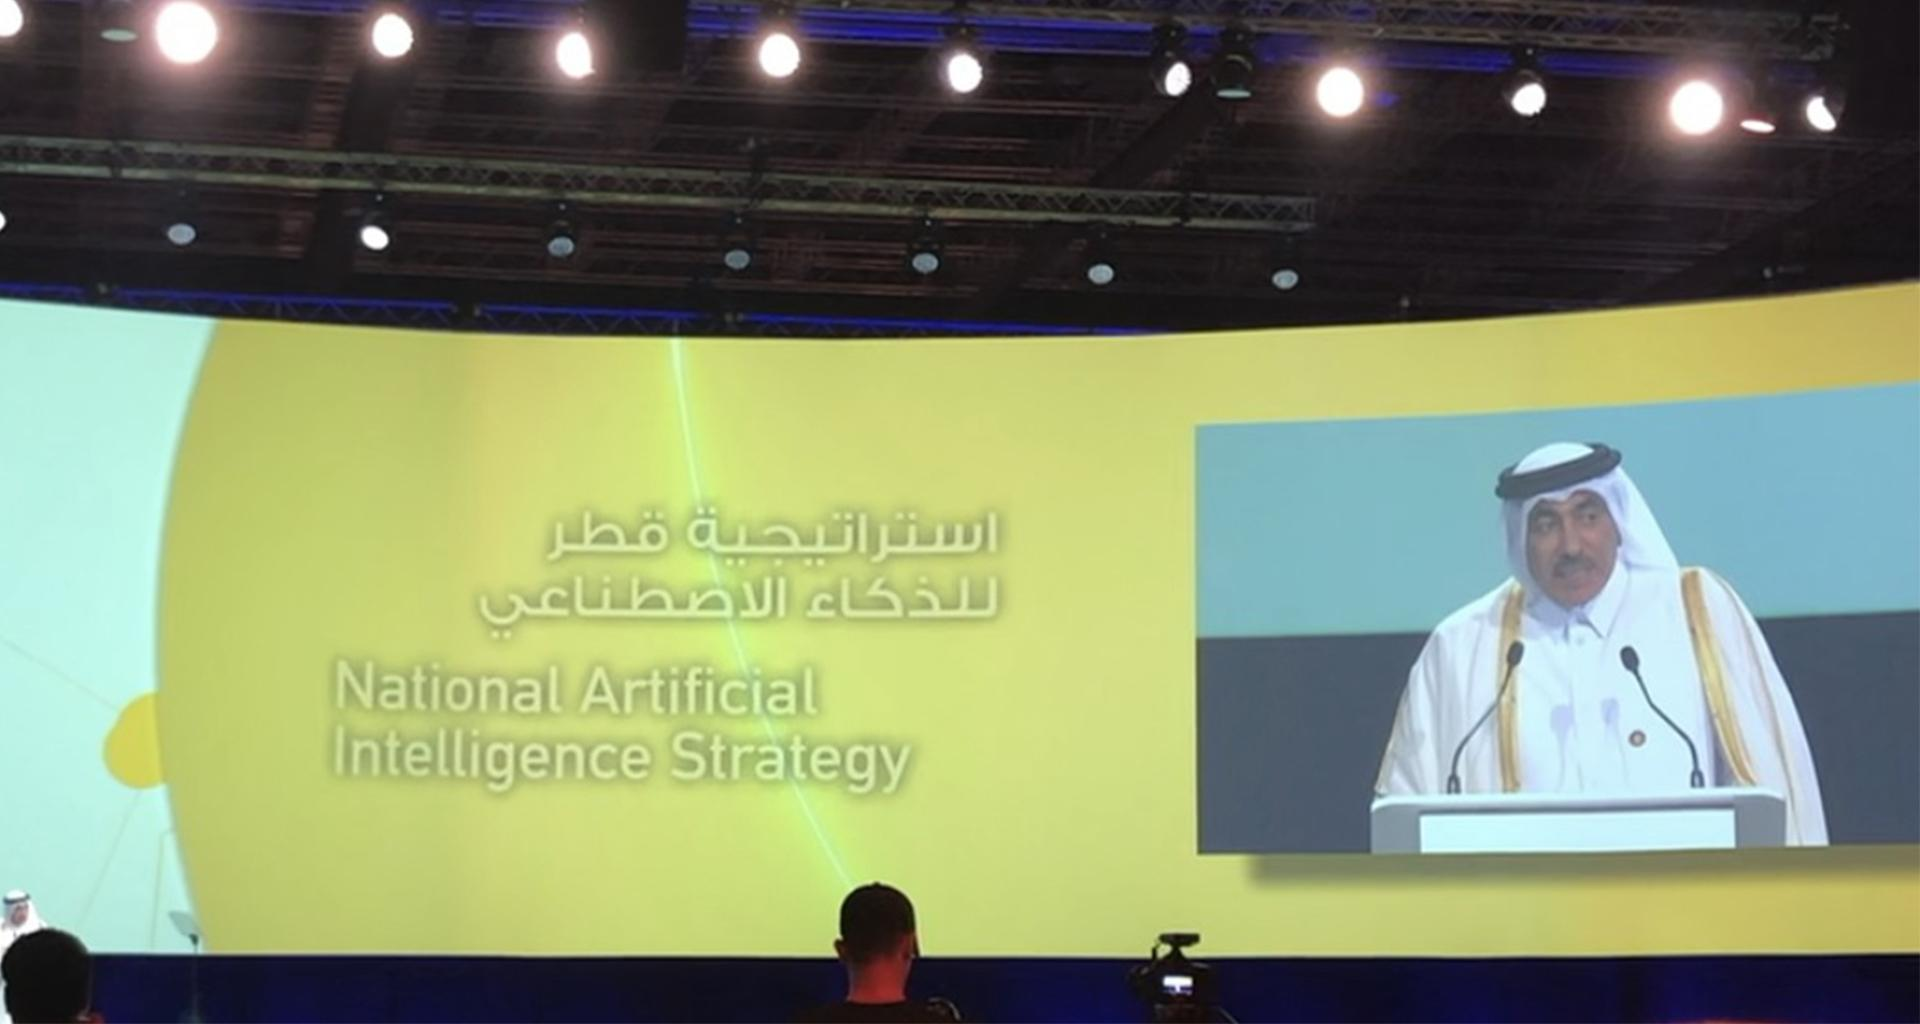 Minister of Transport and Communications Announces Qatar's National Artificial Intelligence Strategy Developed by HBKU's Qatar Computing Research Institute